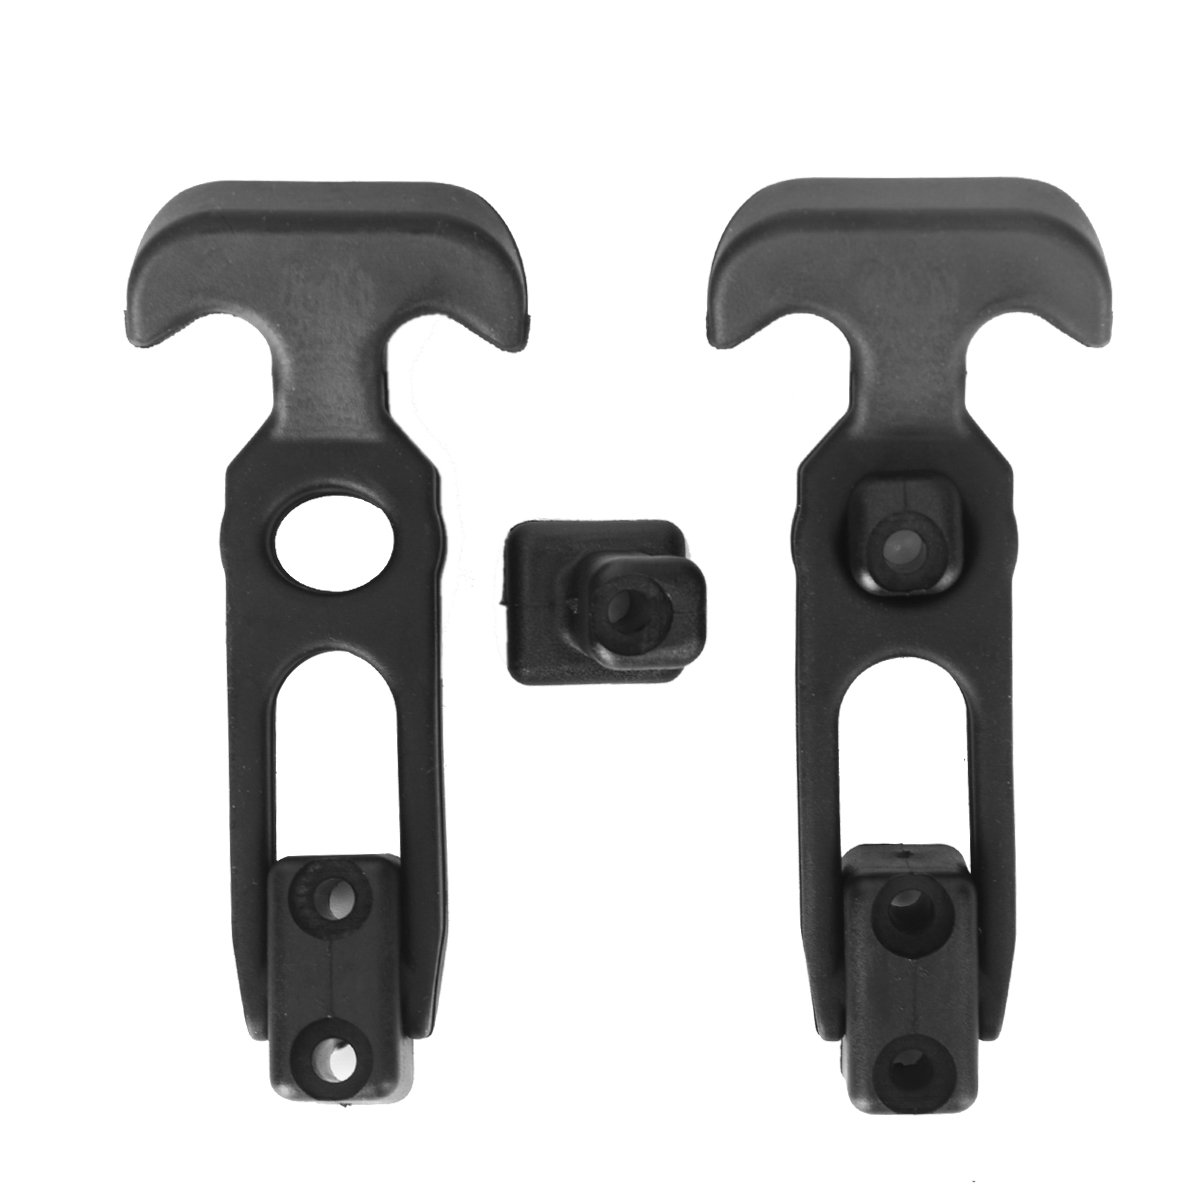 Hardtech Flexible RubberT-Handle Hasp Draw Latches for Cooler, Golf Cart or Tool Box Pack of 2